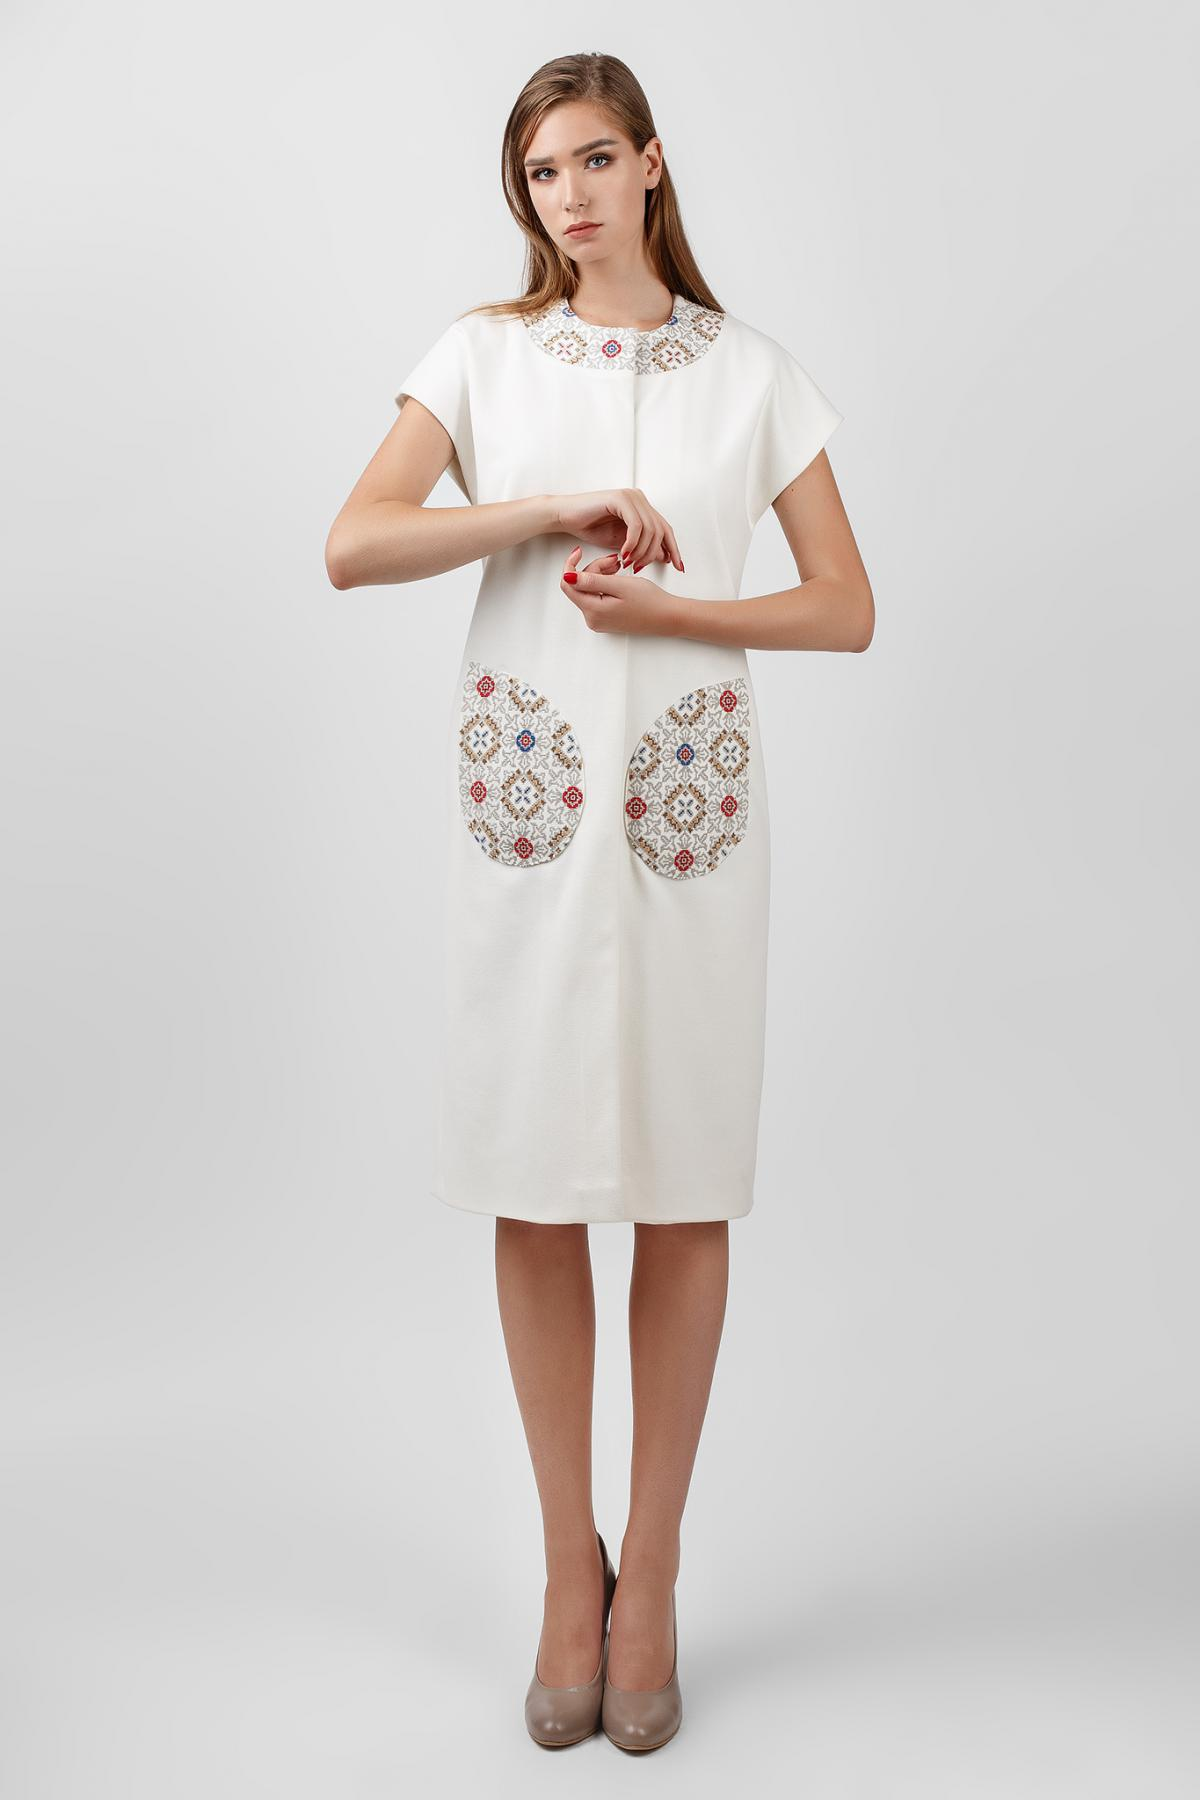 White cardigan with embroidered pockets and collar. Photo №2. | Narodnyi dim Ukraine